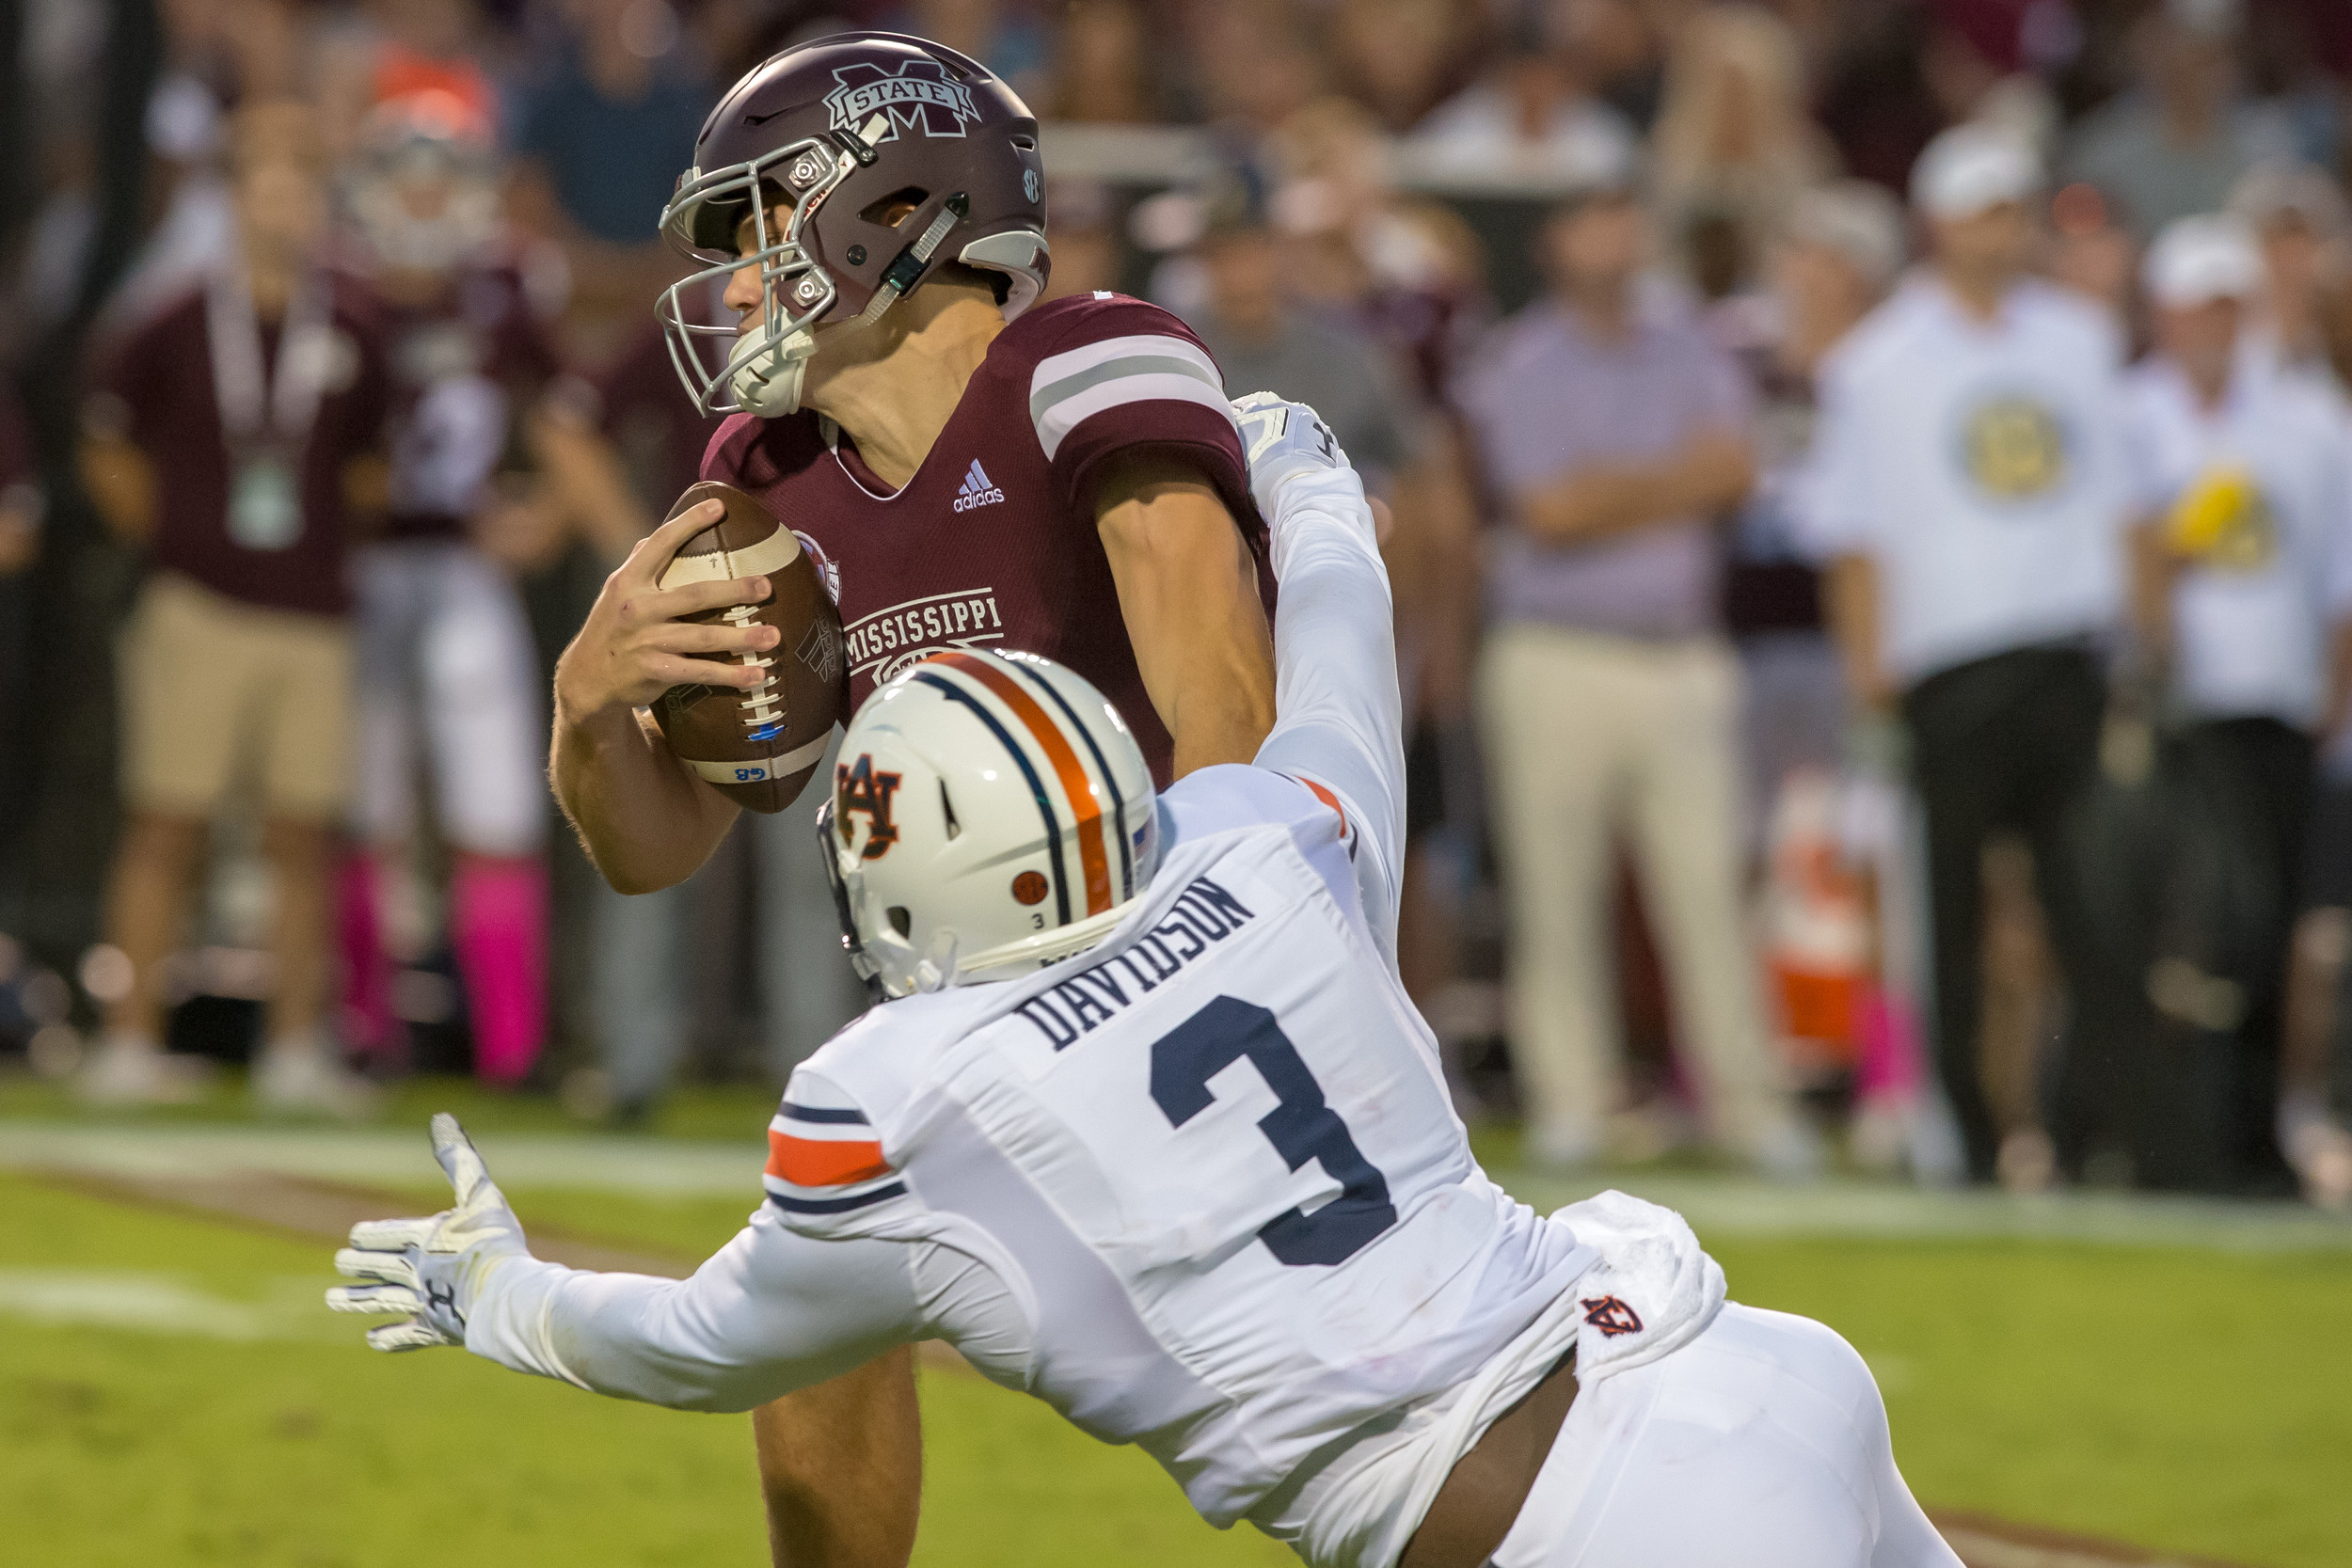 Auburn Tigers defensive lineman Marlon Davidson (3) pressures Mississippi State Bulldogs quarterback Nick Fitzgerald (7) during the first half of Saturday's game, at Davis Wade Stadium in Starkville, MS. Daily Mountain Eagle -  Jeff Johnsey